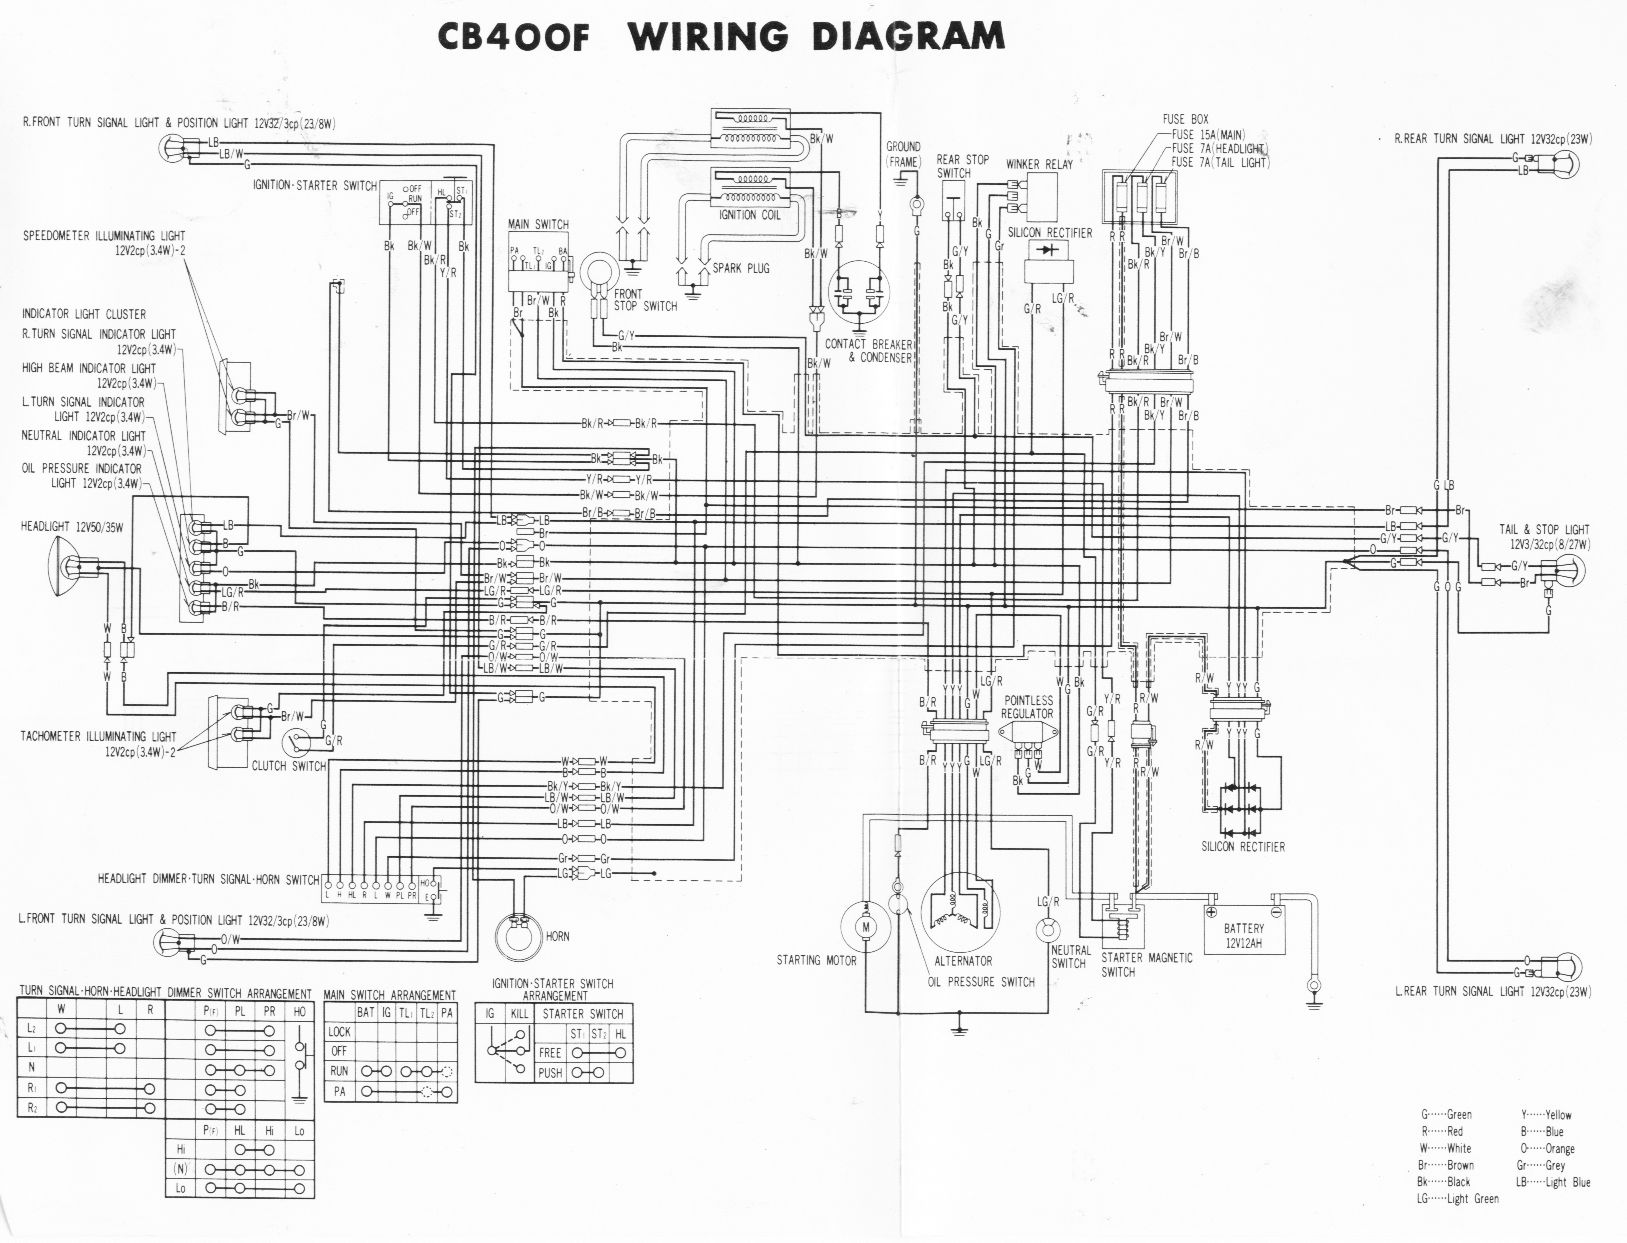 78 cb400 wiring diagram